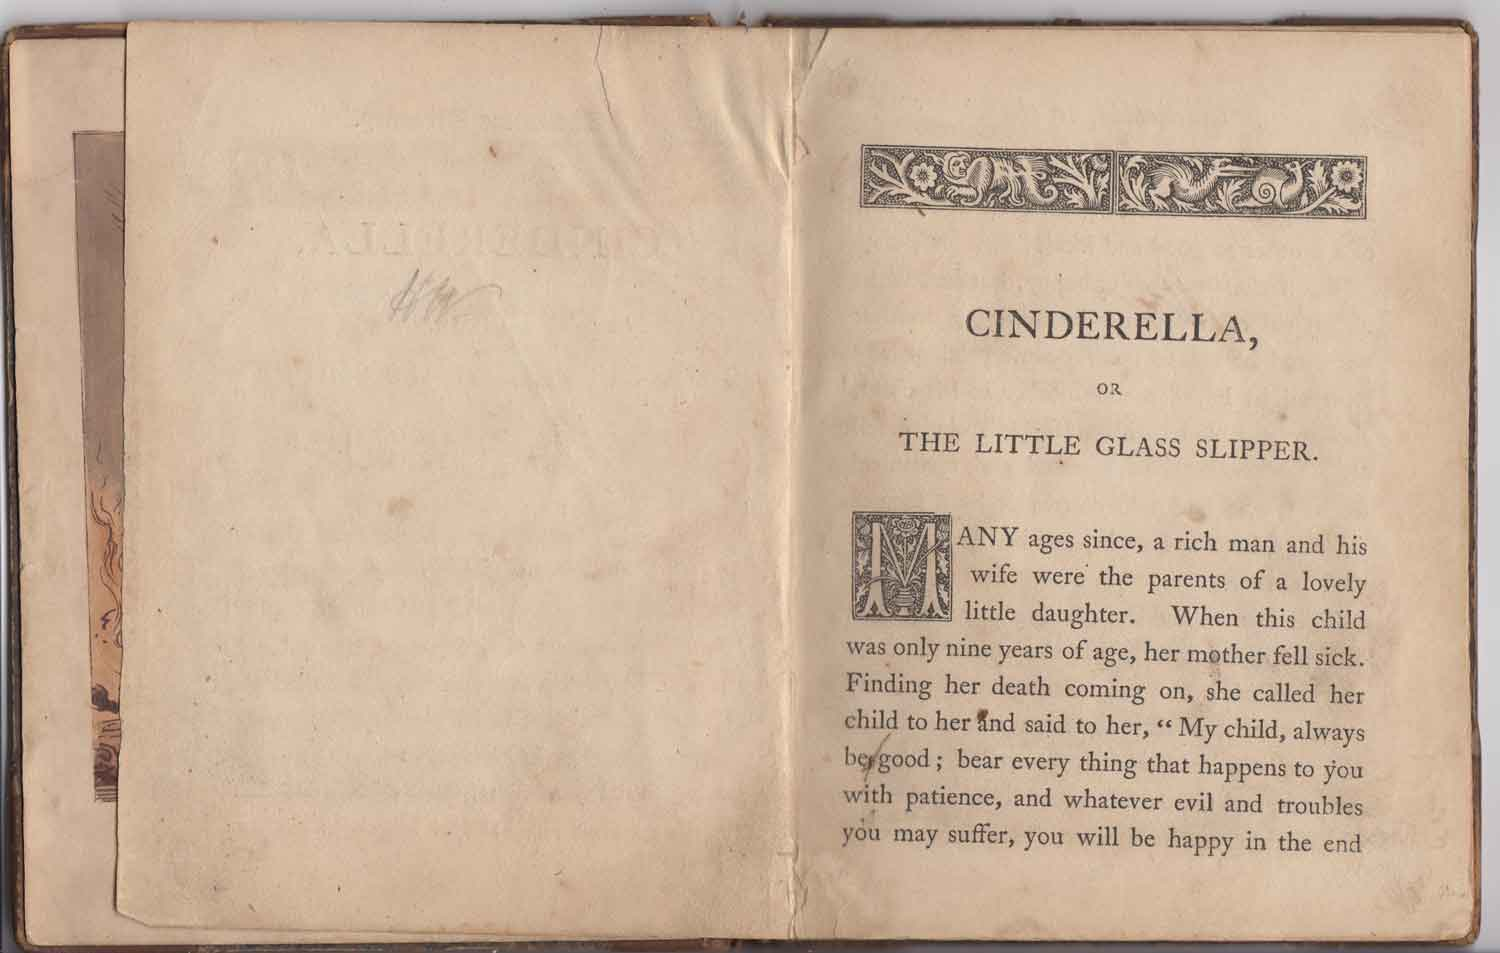 Cinderella's book (from the collection book) 1845 yen cover